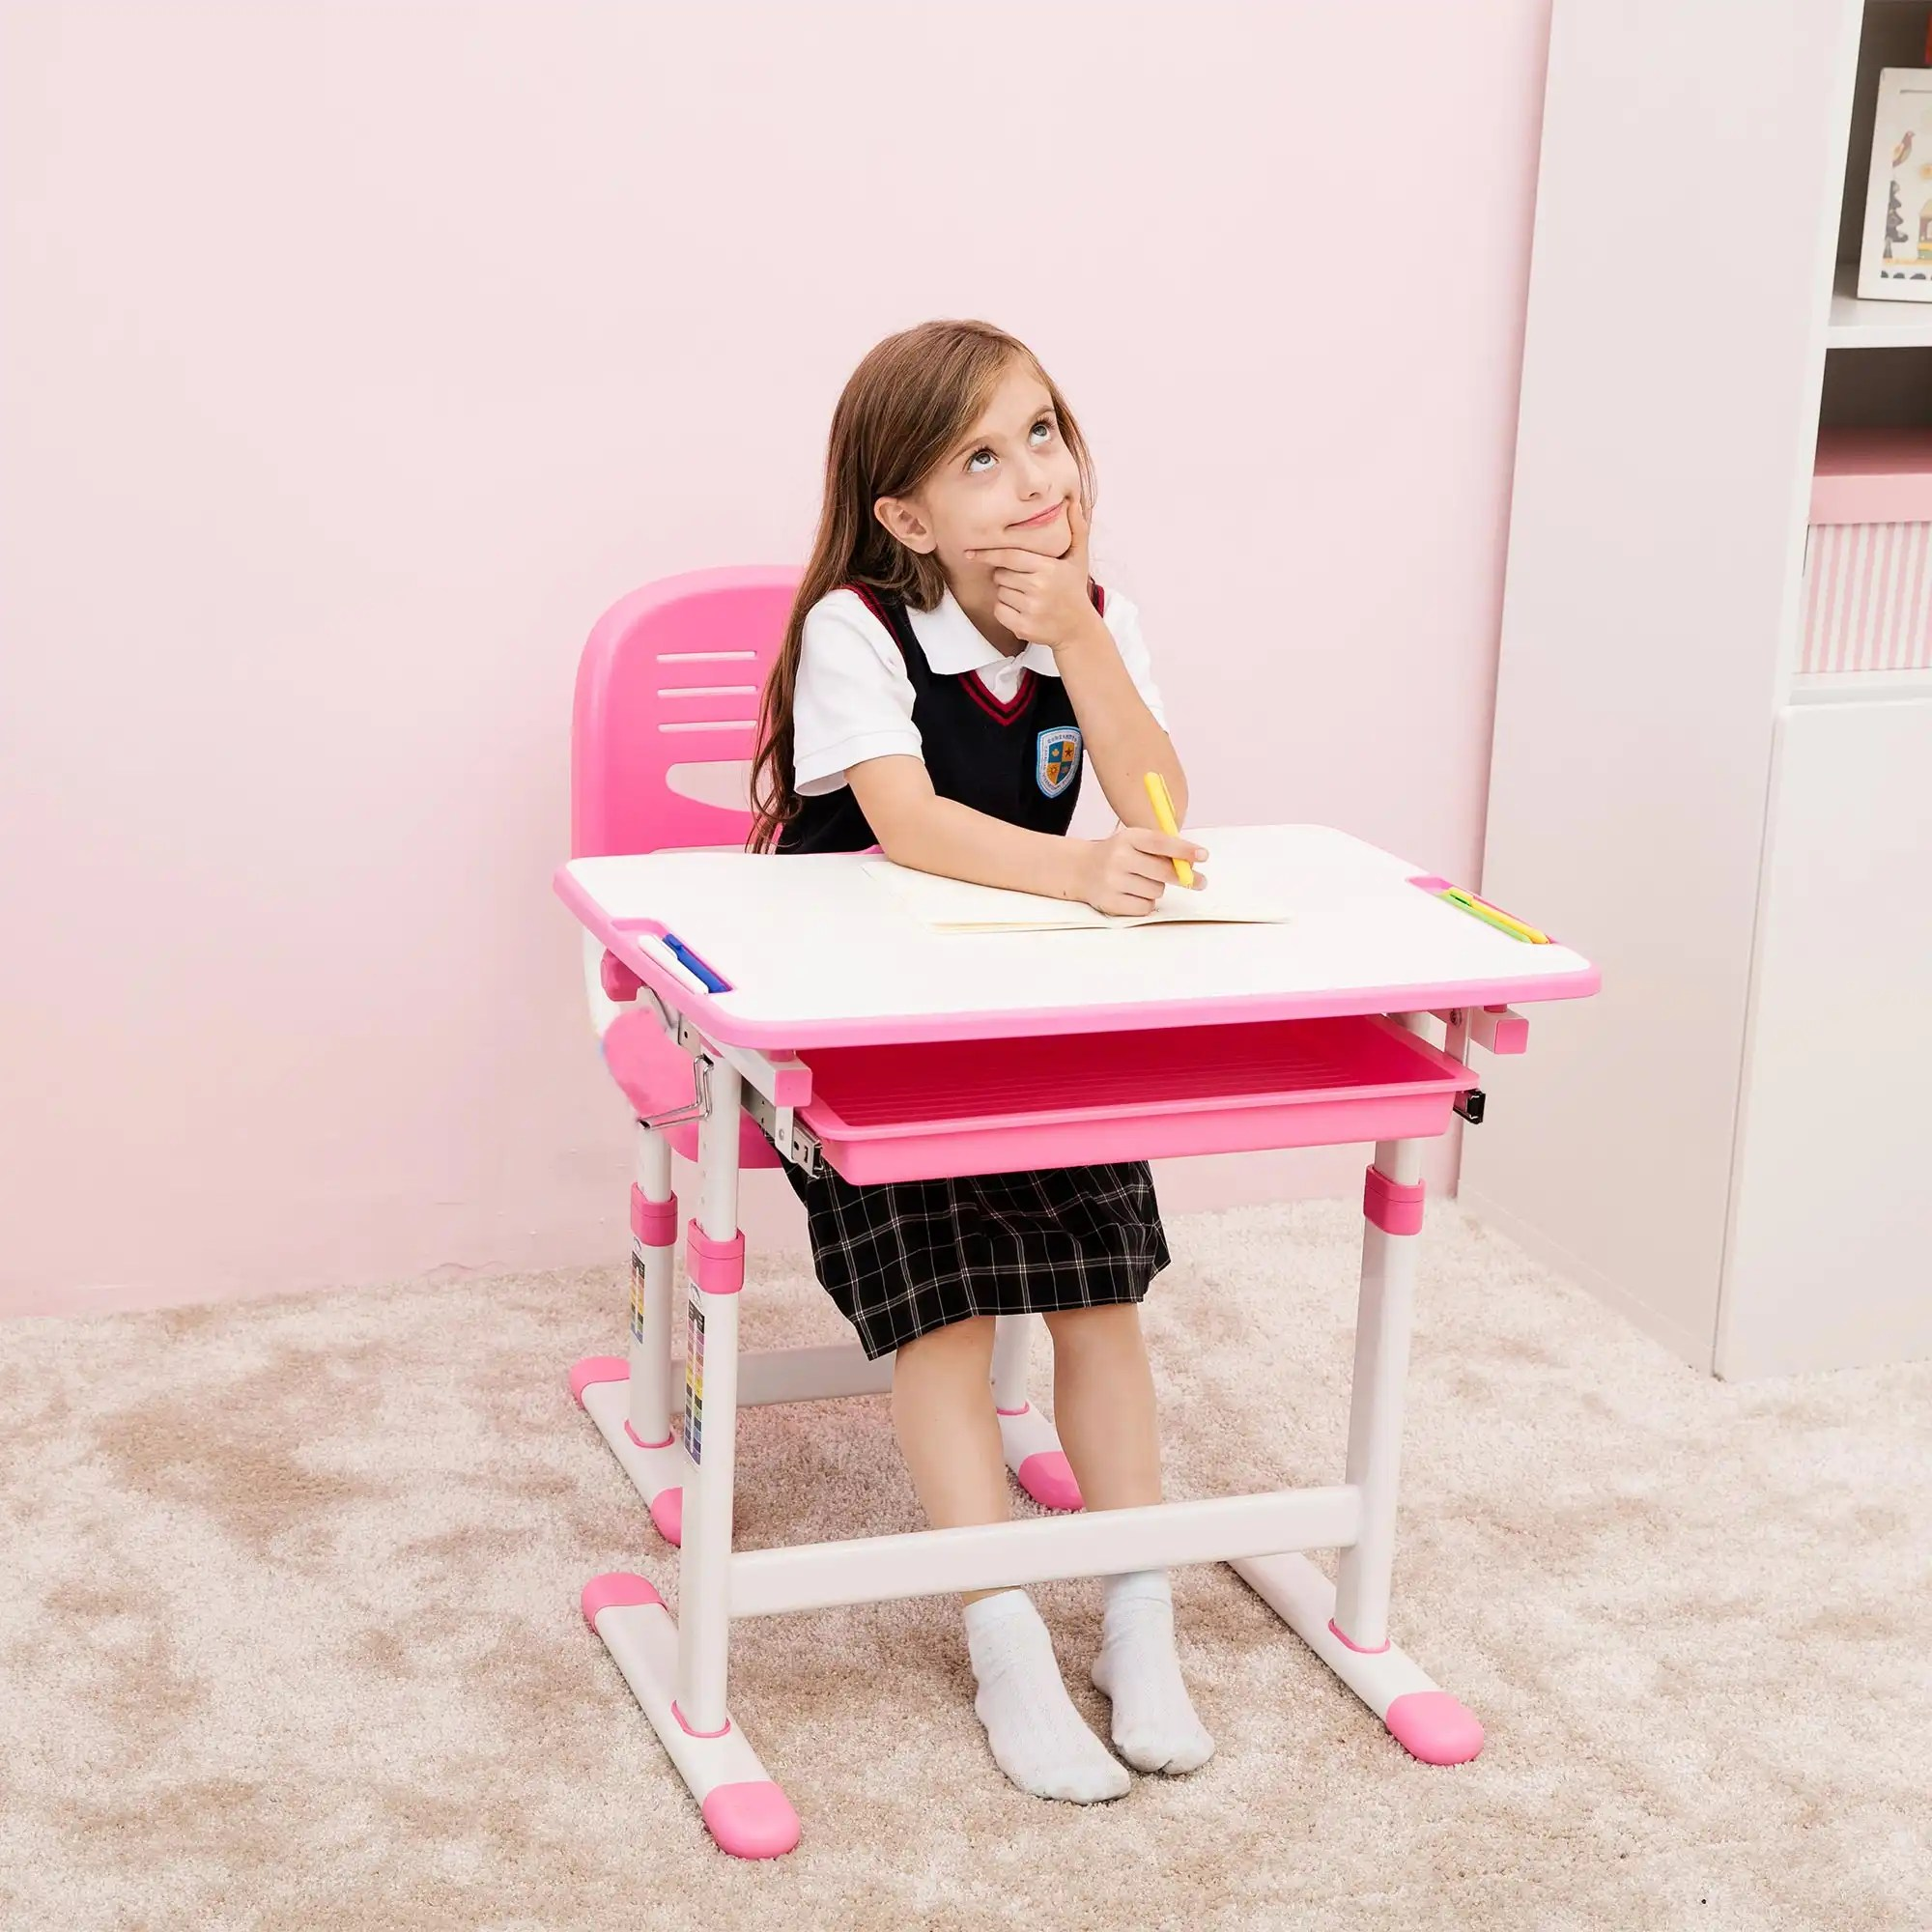 kids desk chairs uk computer target best quality children desks  height